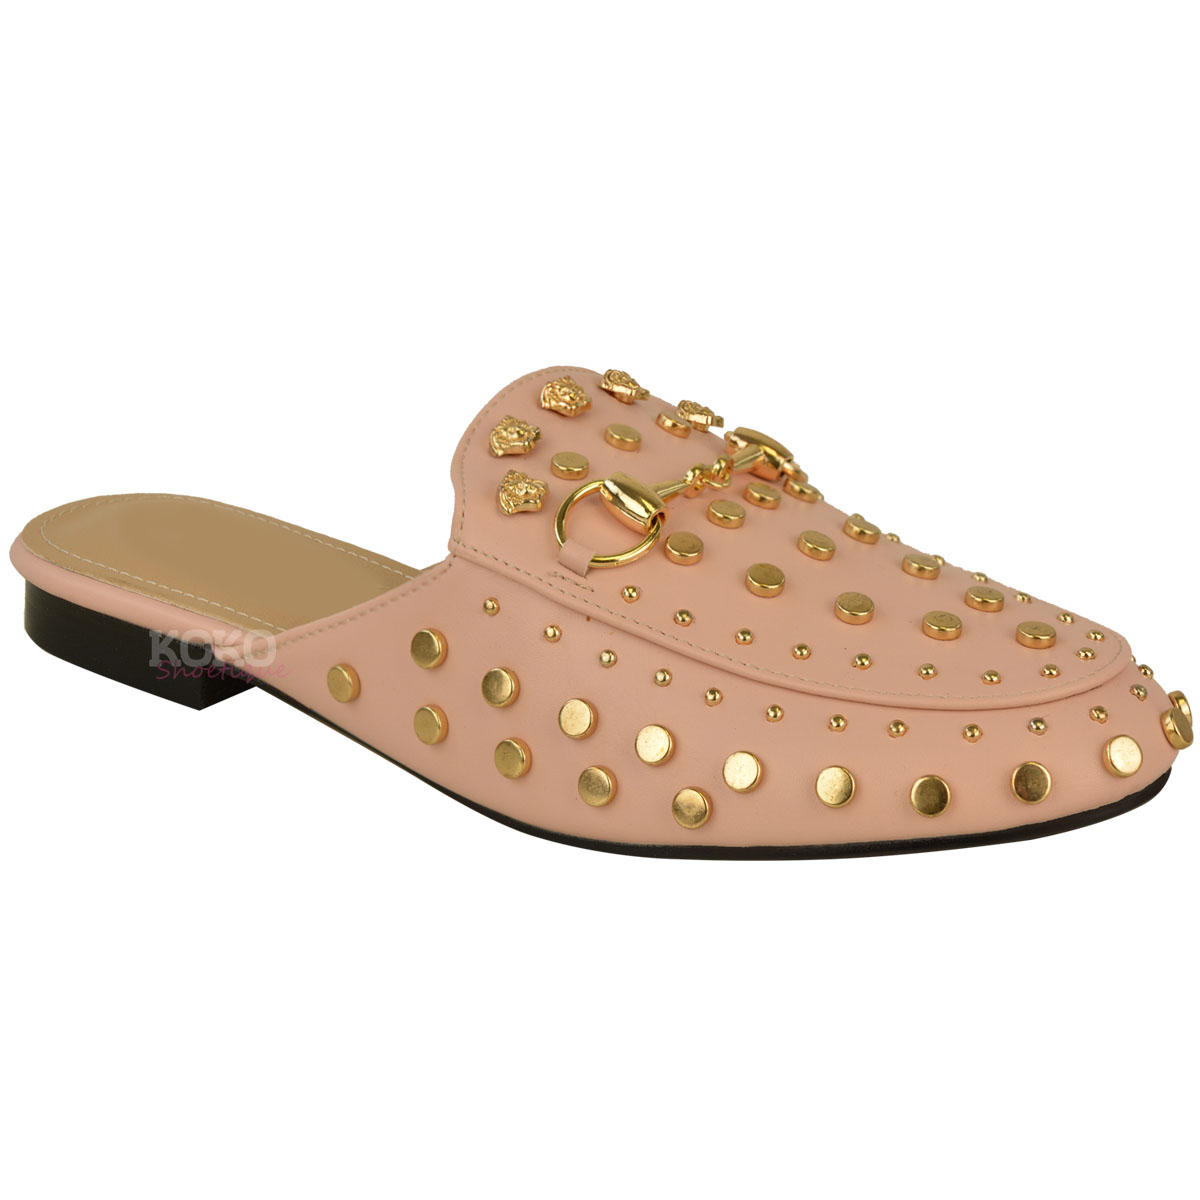 Womens Ladies Slip On Flat Sliders Studded Loafers Smart ...